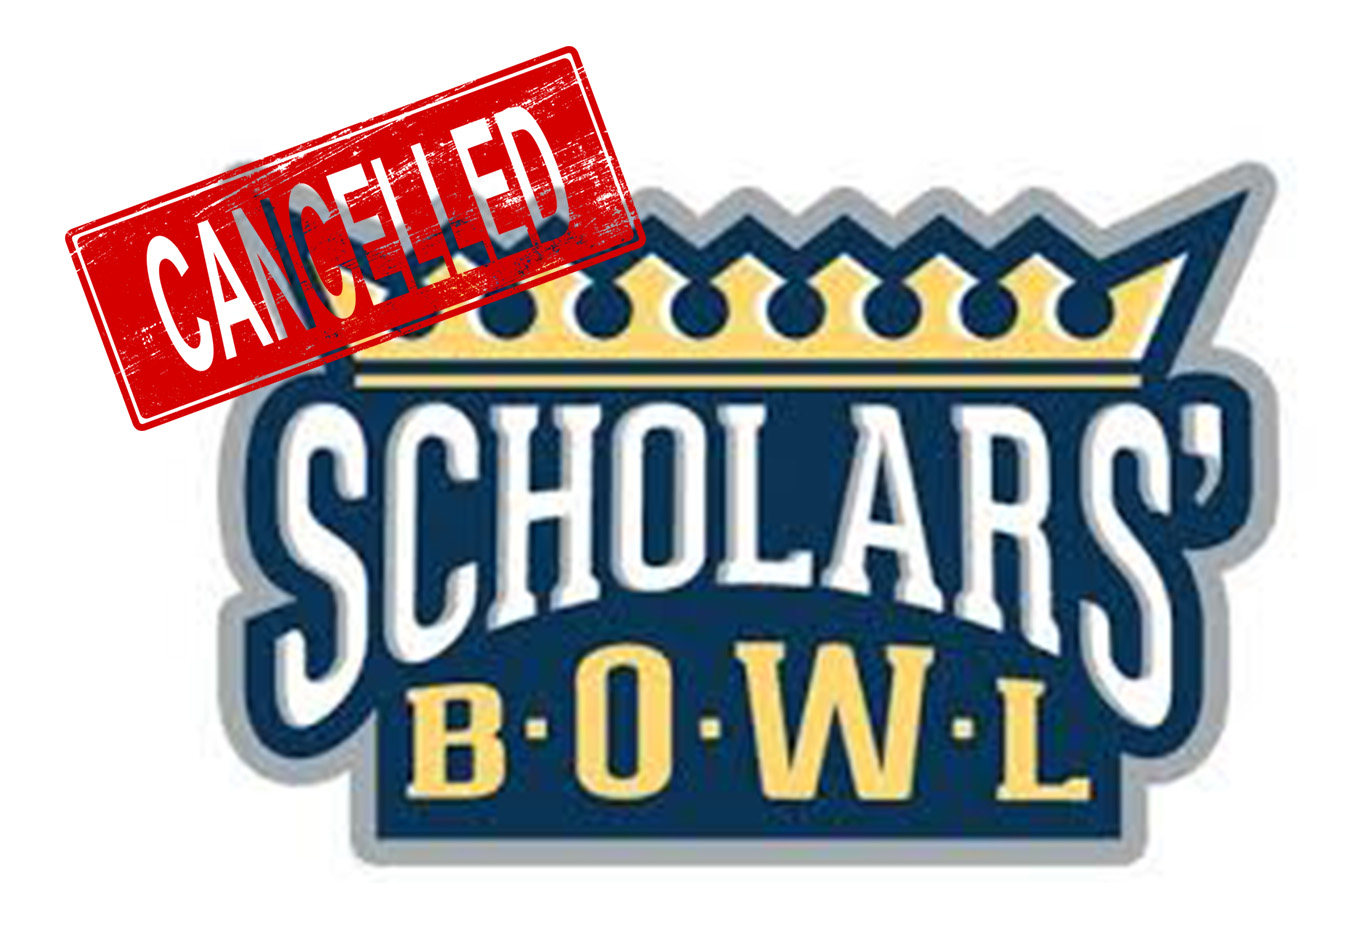 Scholars Bowl Cancelled